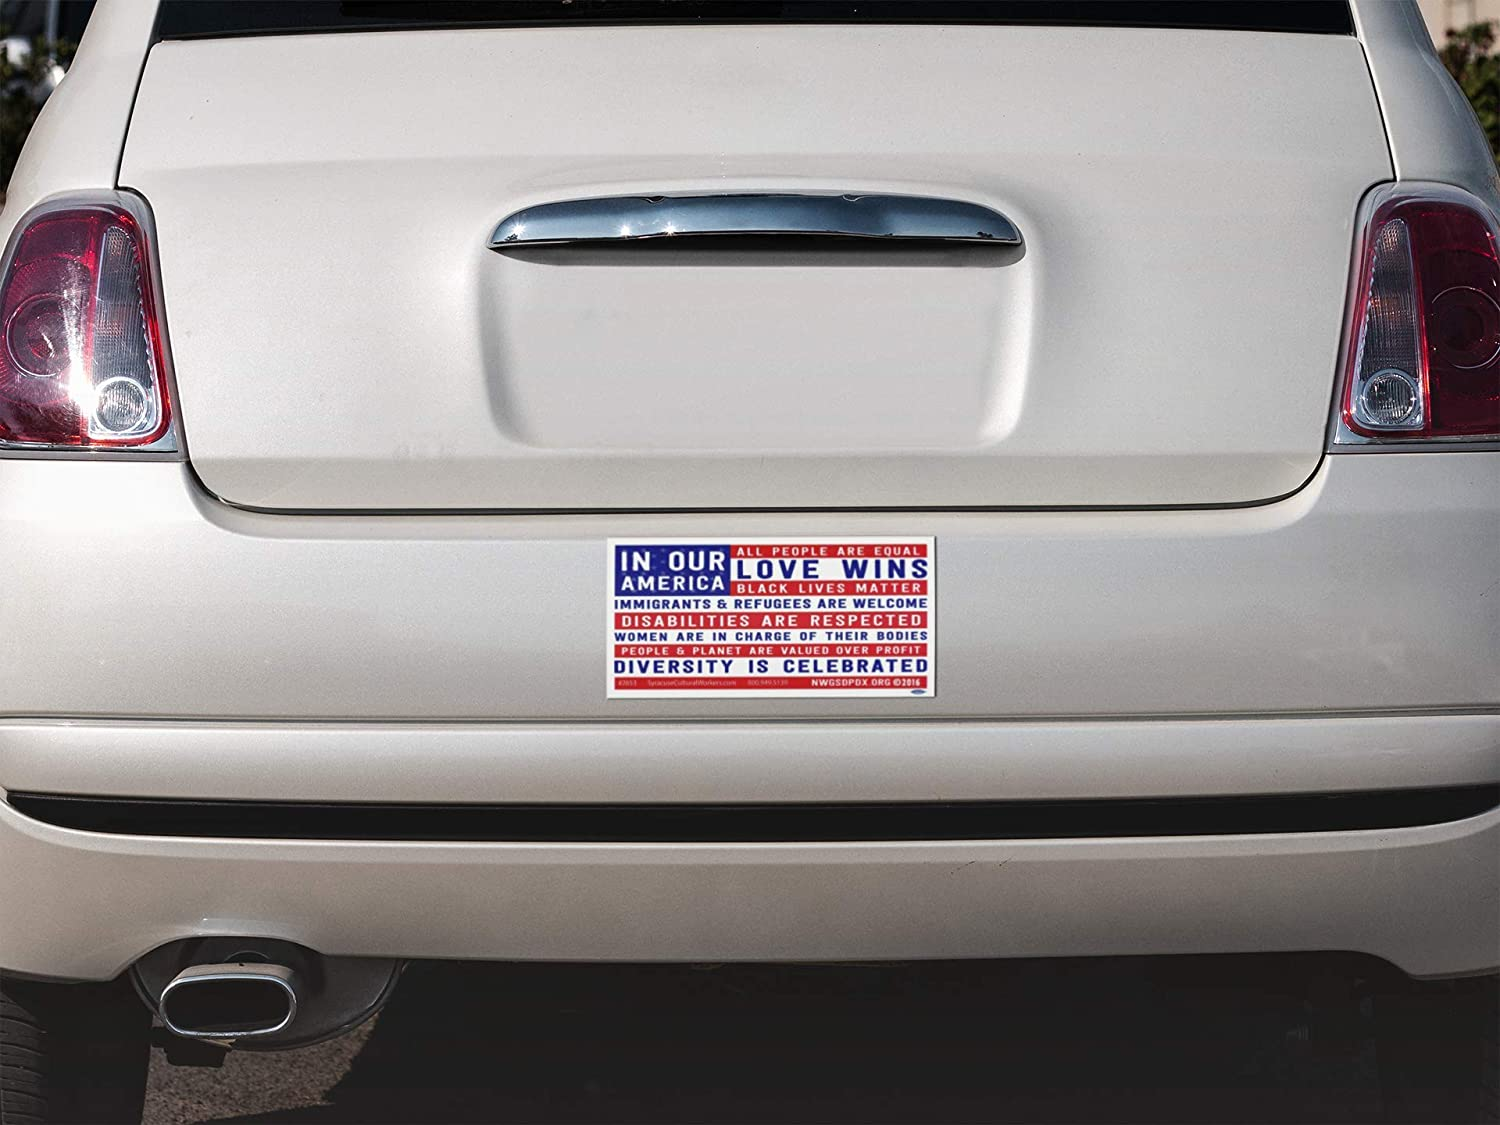 7.75 X 3.75 Magnetic Bumper Sticker//Decal Magnet Syracuse Cultural Workers In Our America